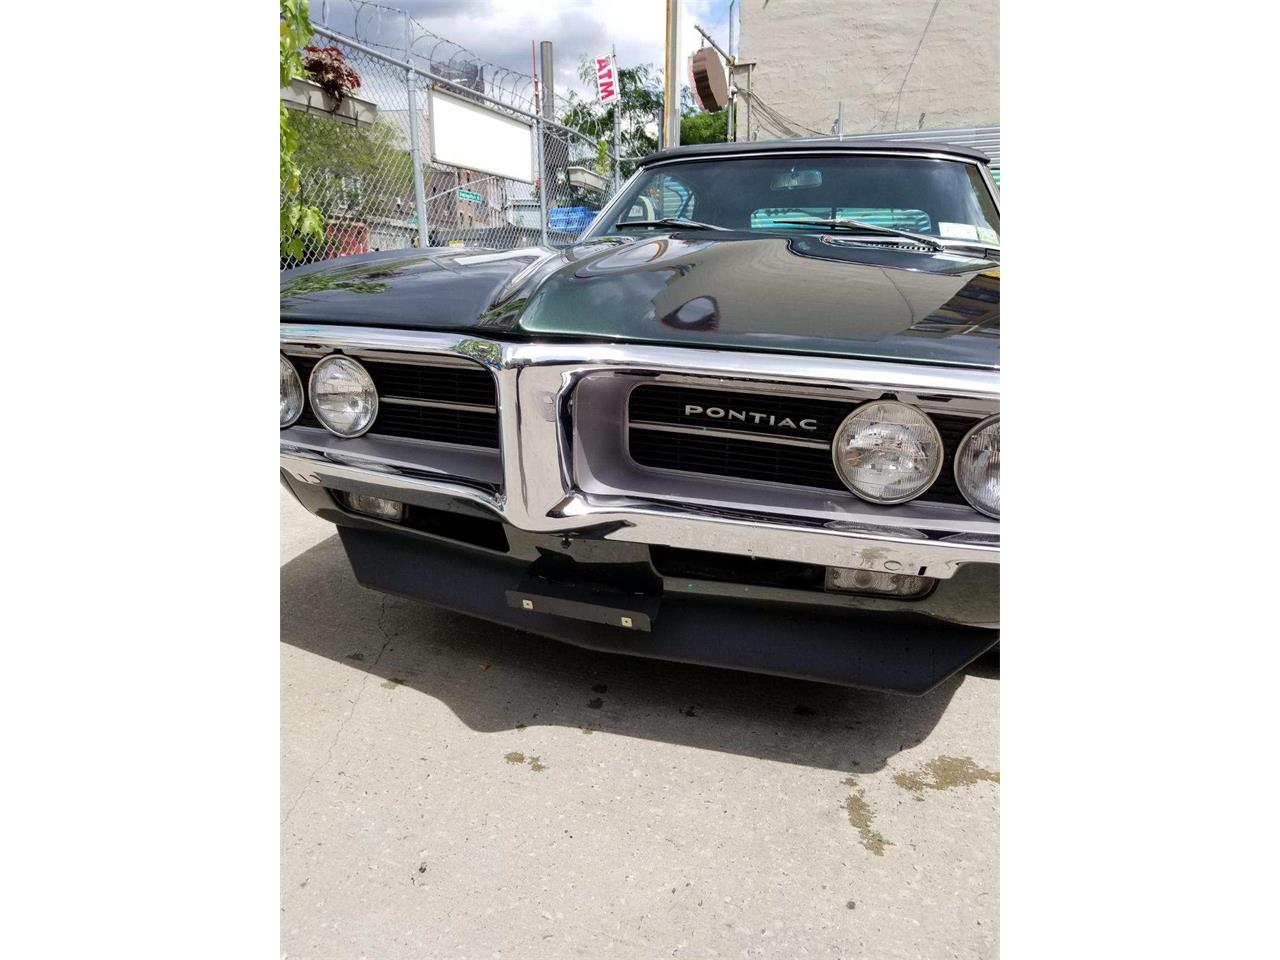 Large Picture of 1967 Pontiac Firebird located in Brooklyn  New York - $20,000.00 - OESA